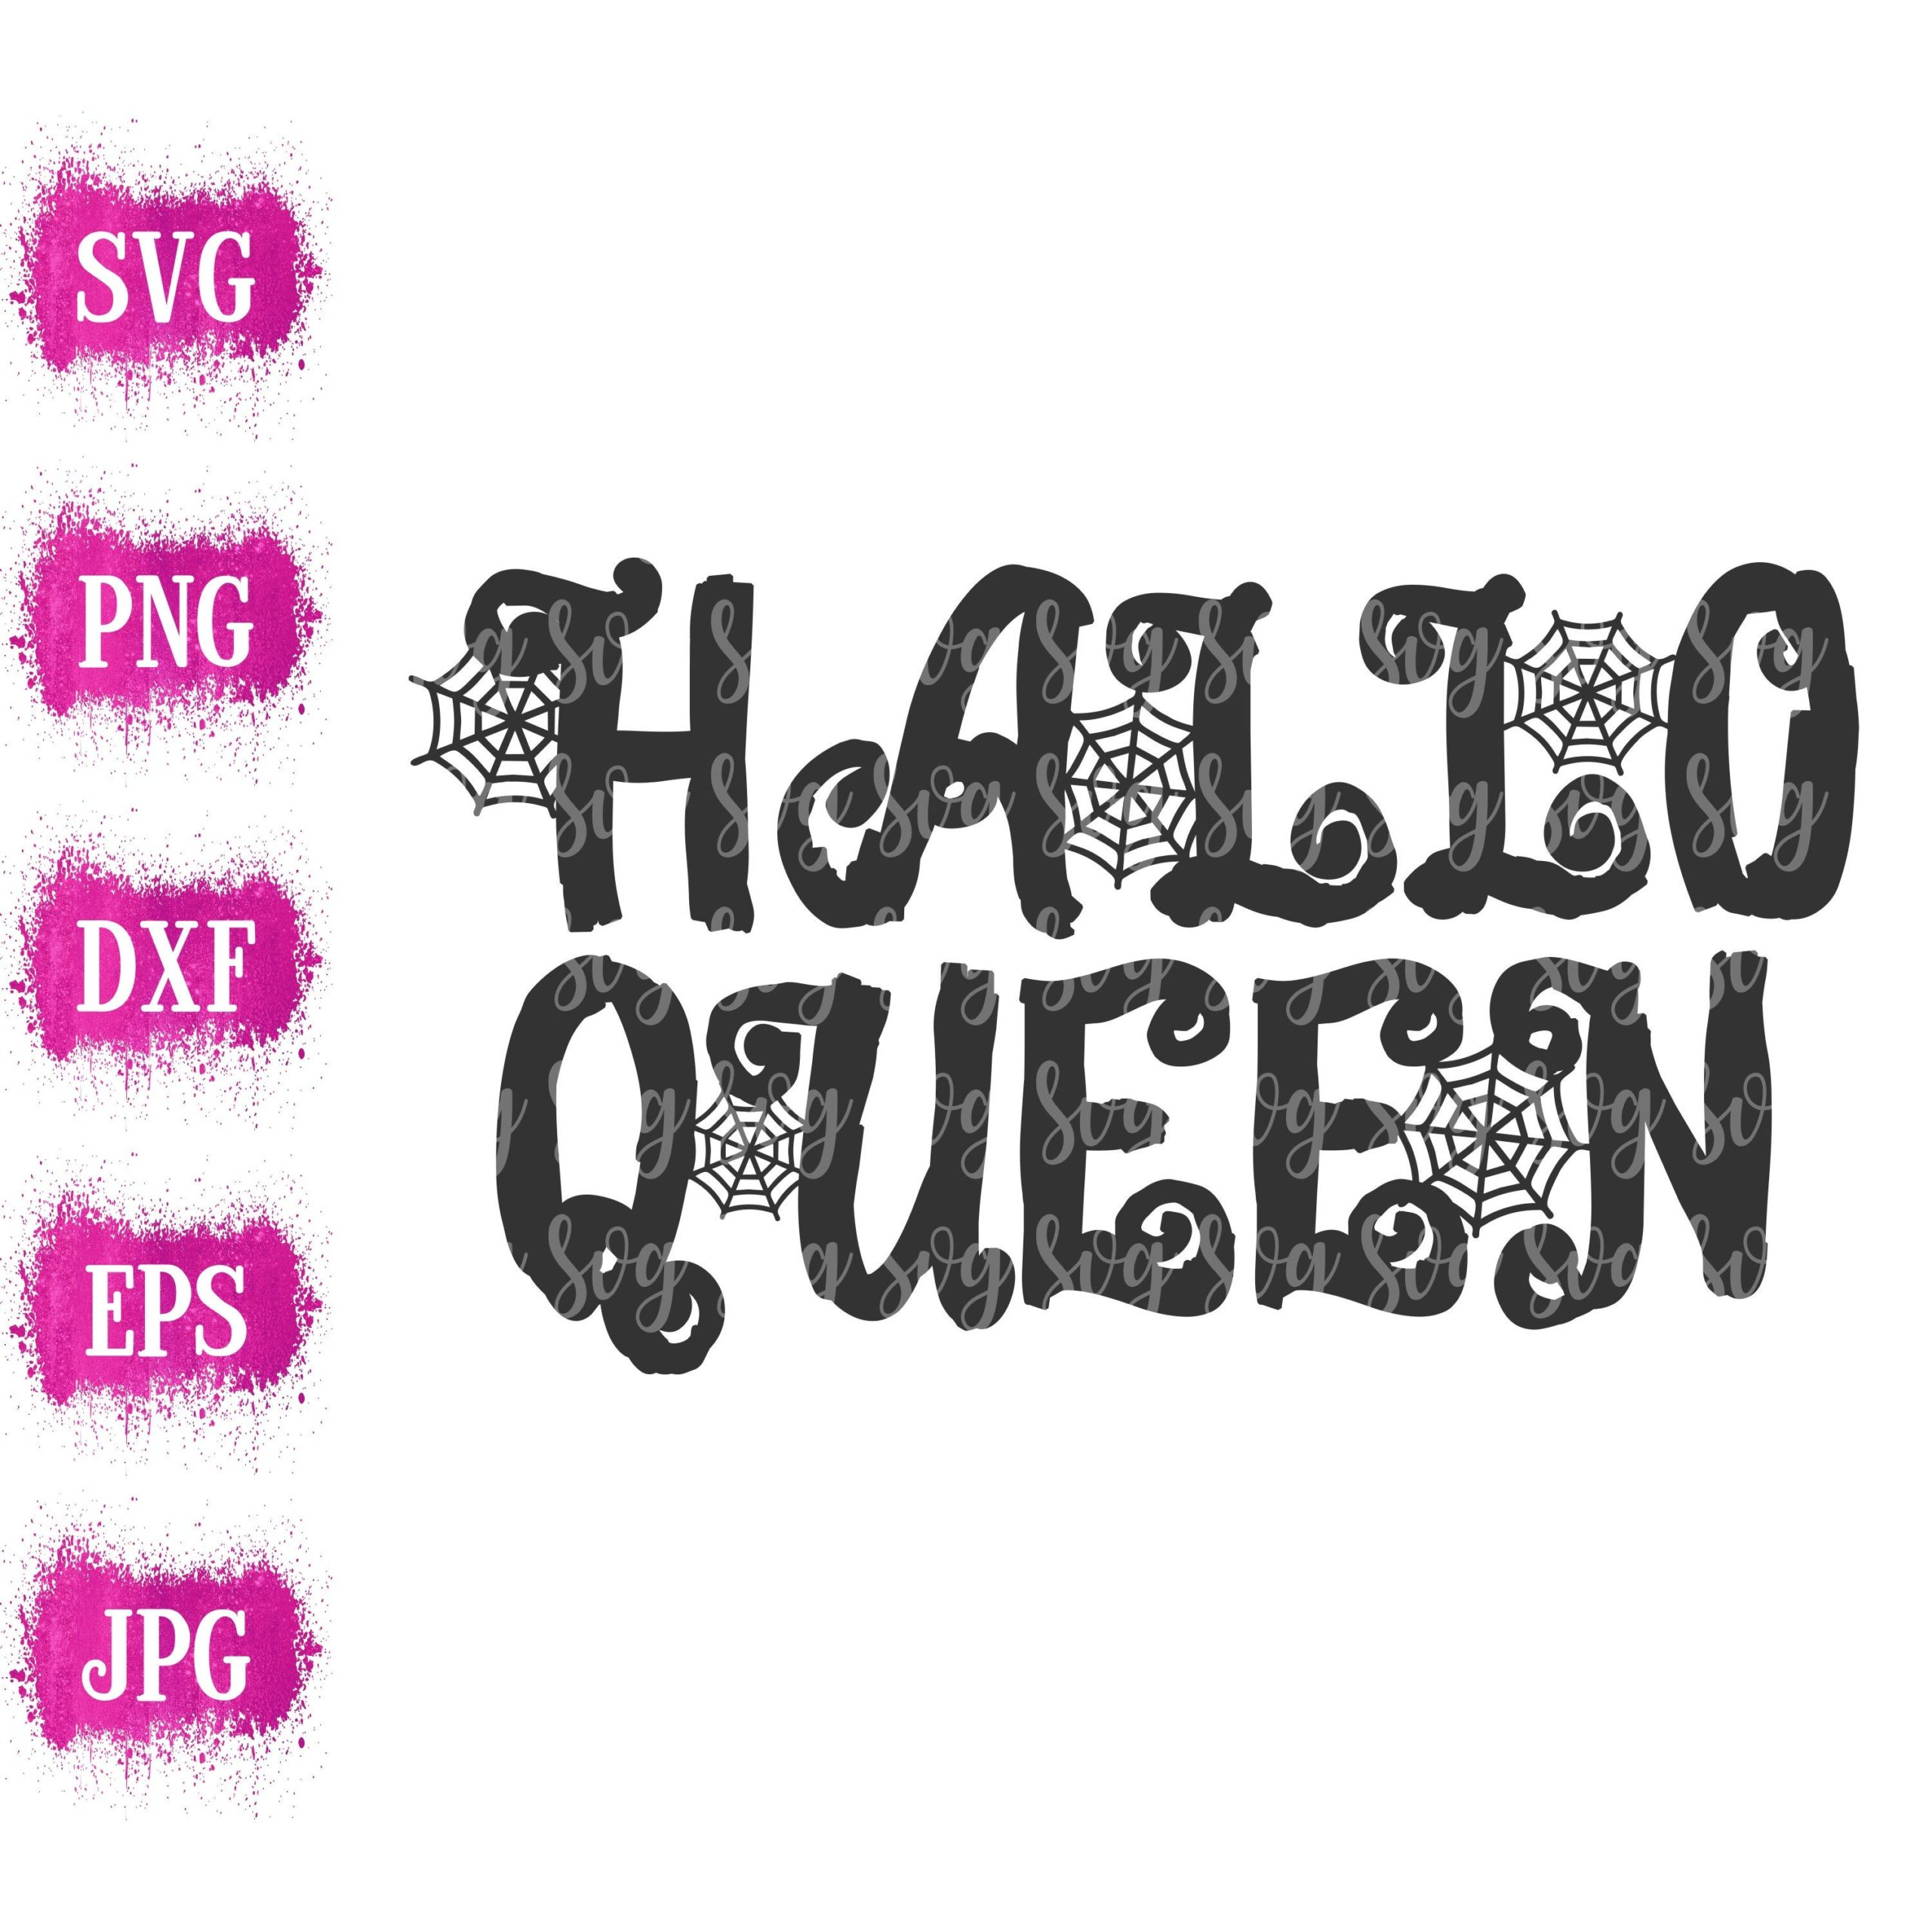 Halloqueen-svg-hallo-queen-svg-halloween-svg-happy-halloween-svg-spiderweb-svg-cut-files-cricut-svg-svg-for-mobile-mobile-svg-5f721ab1